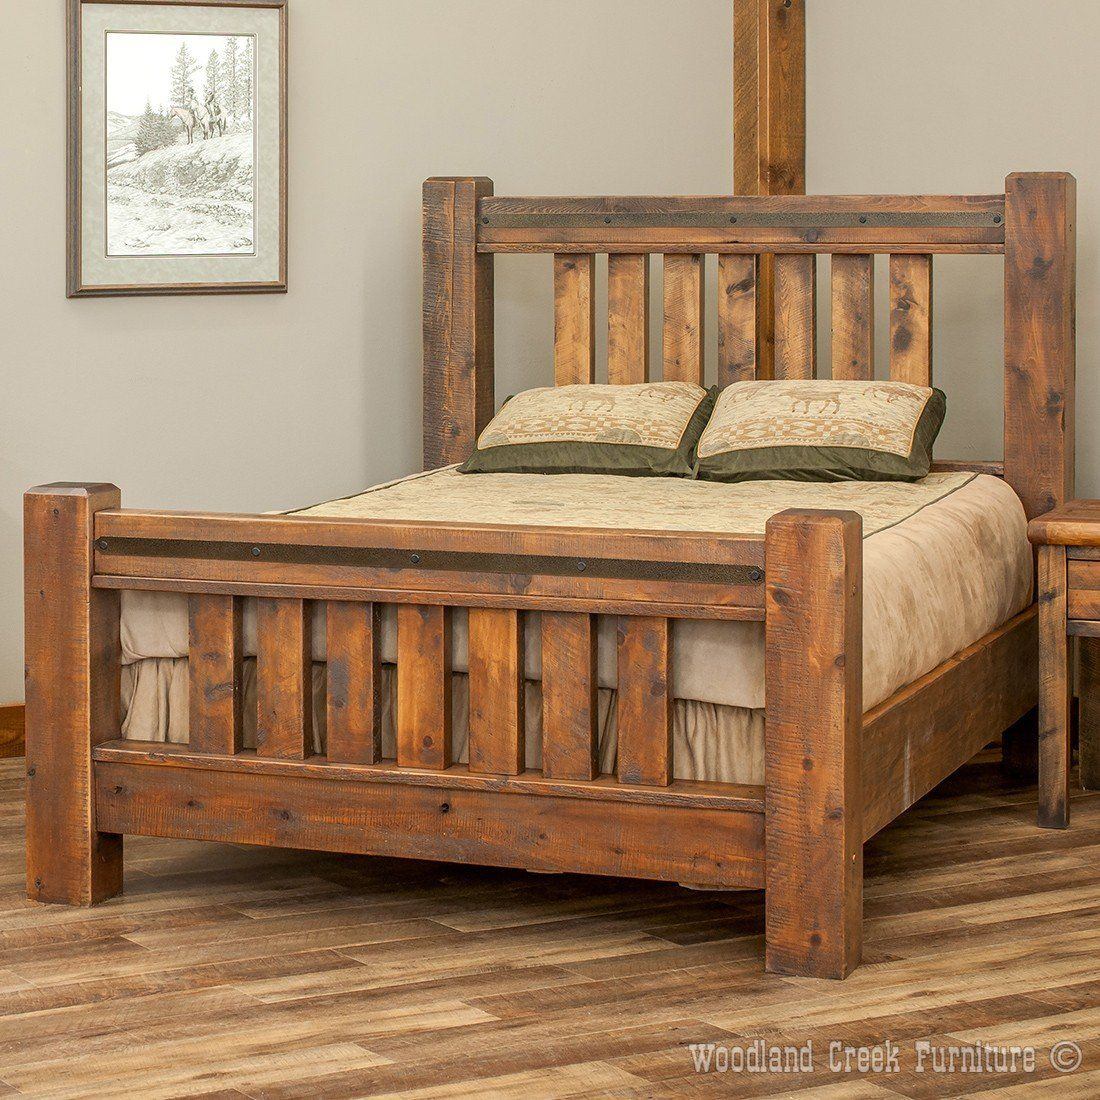 Sawmill Spindle Rough Sawn Timber Bed Rustic Furniture Design Rustic Bed Frame Rustic Bedroom Furniture